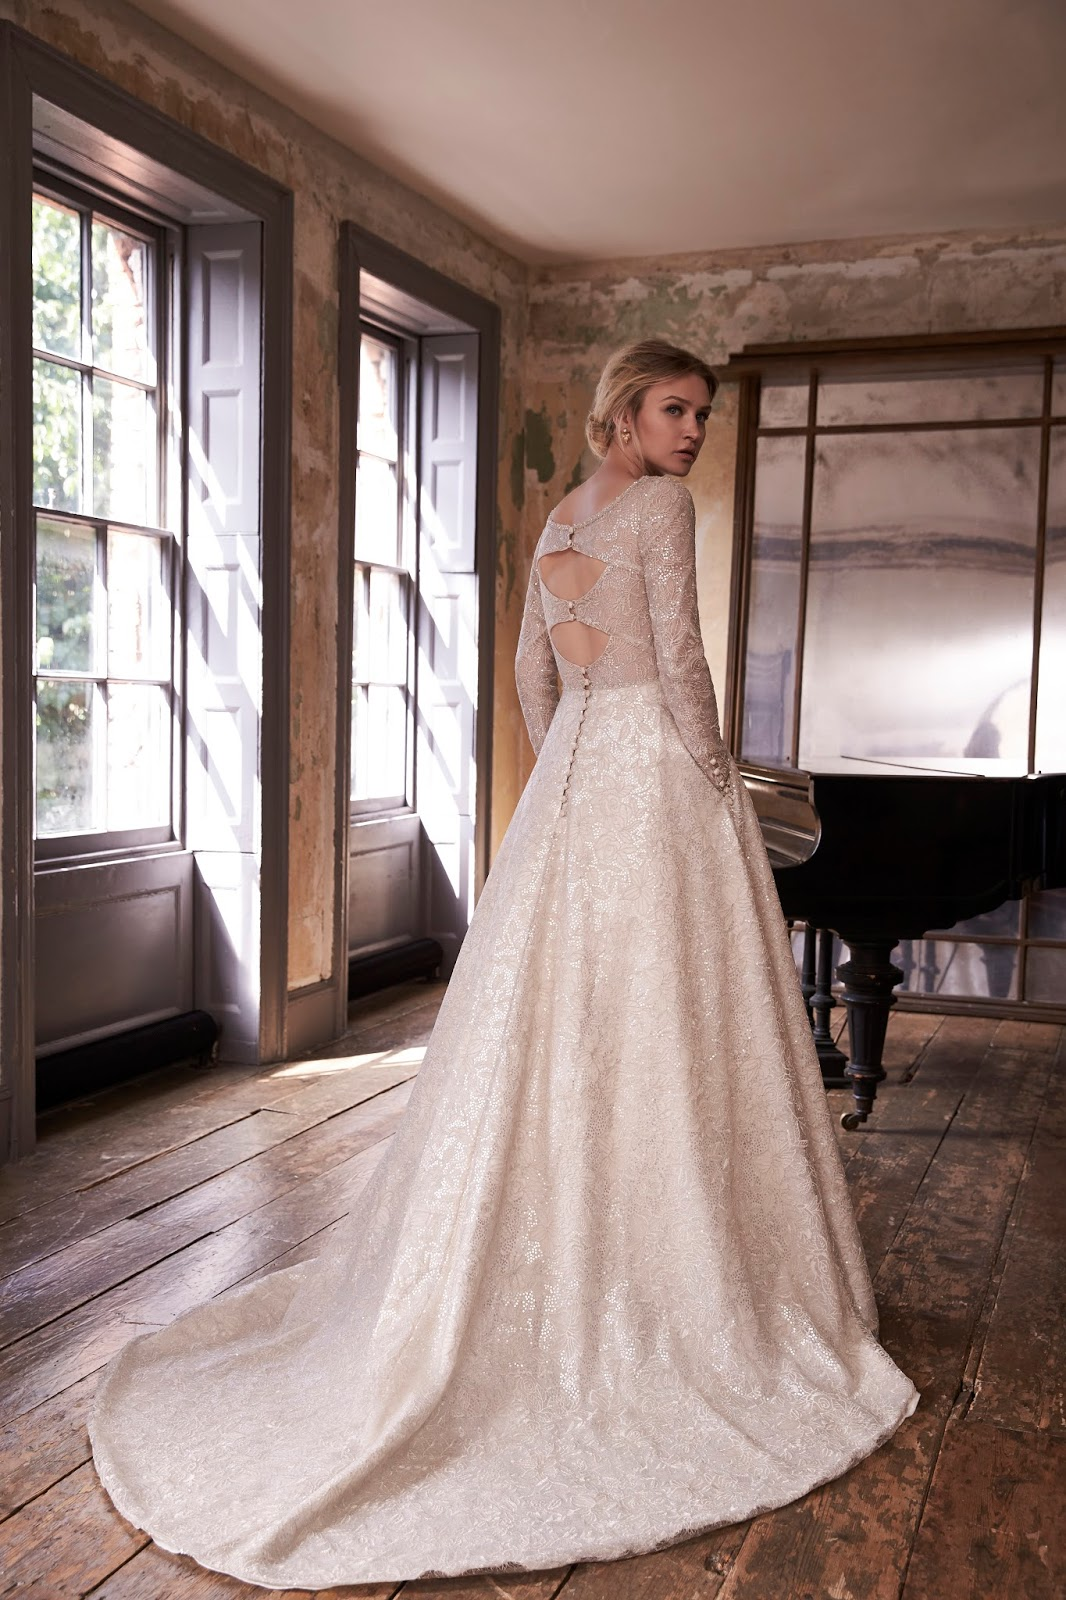 729e24210b The Sassi Holford ethos is to create an apparent effortless style,  empowering confidence and making the bride feel their most beautiful.""